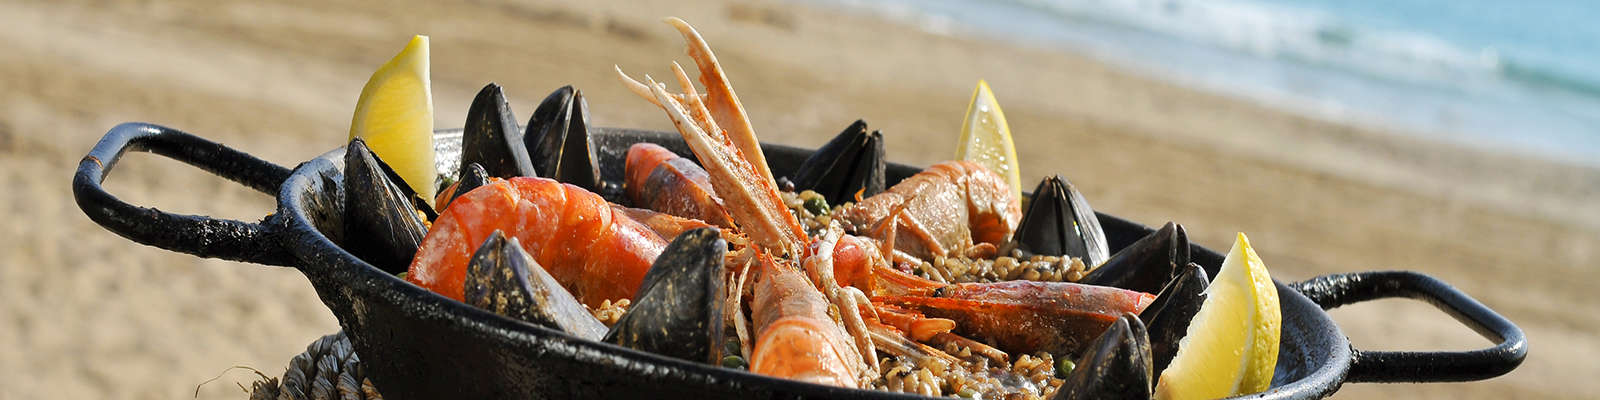 Enjoy the typical Valencian paella by the sea